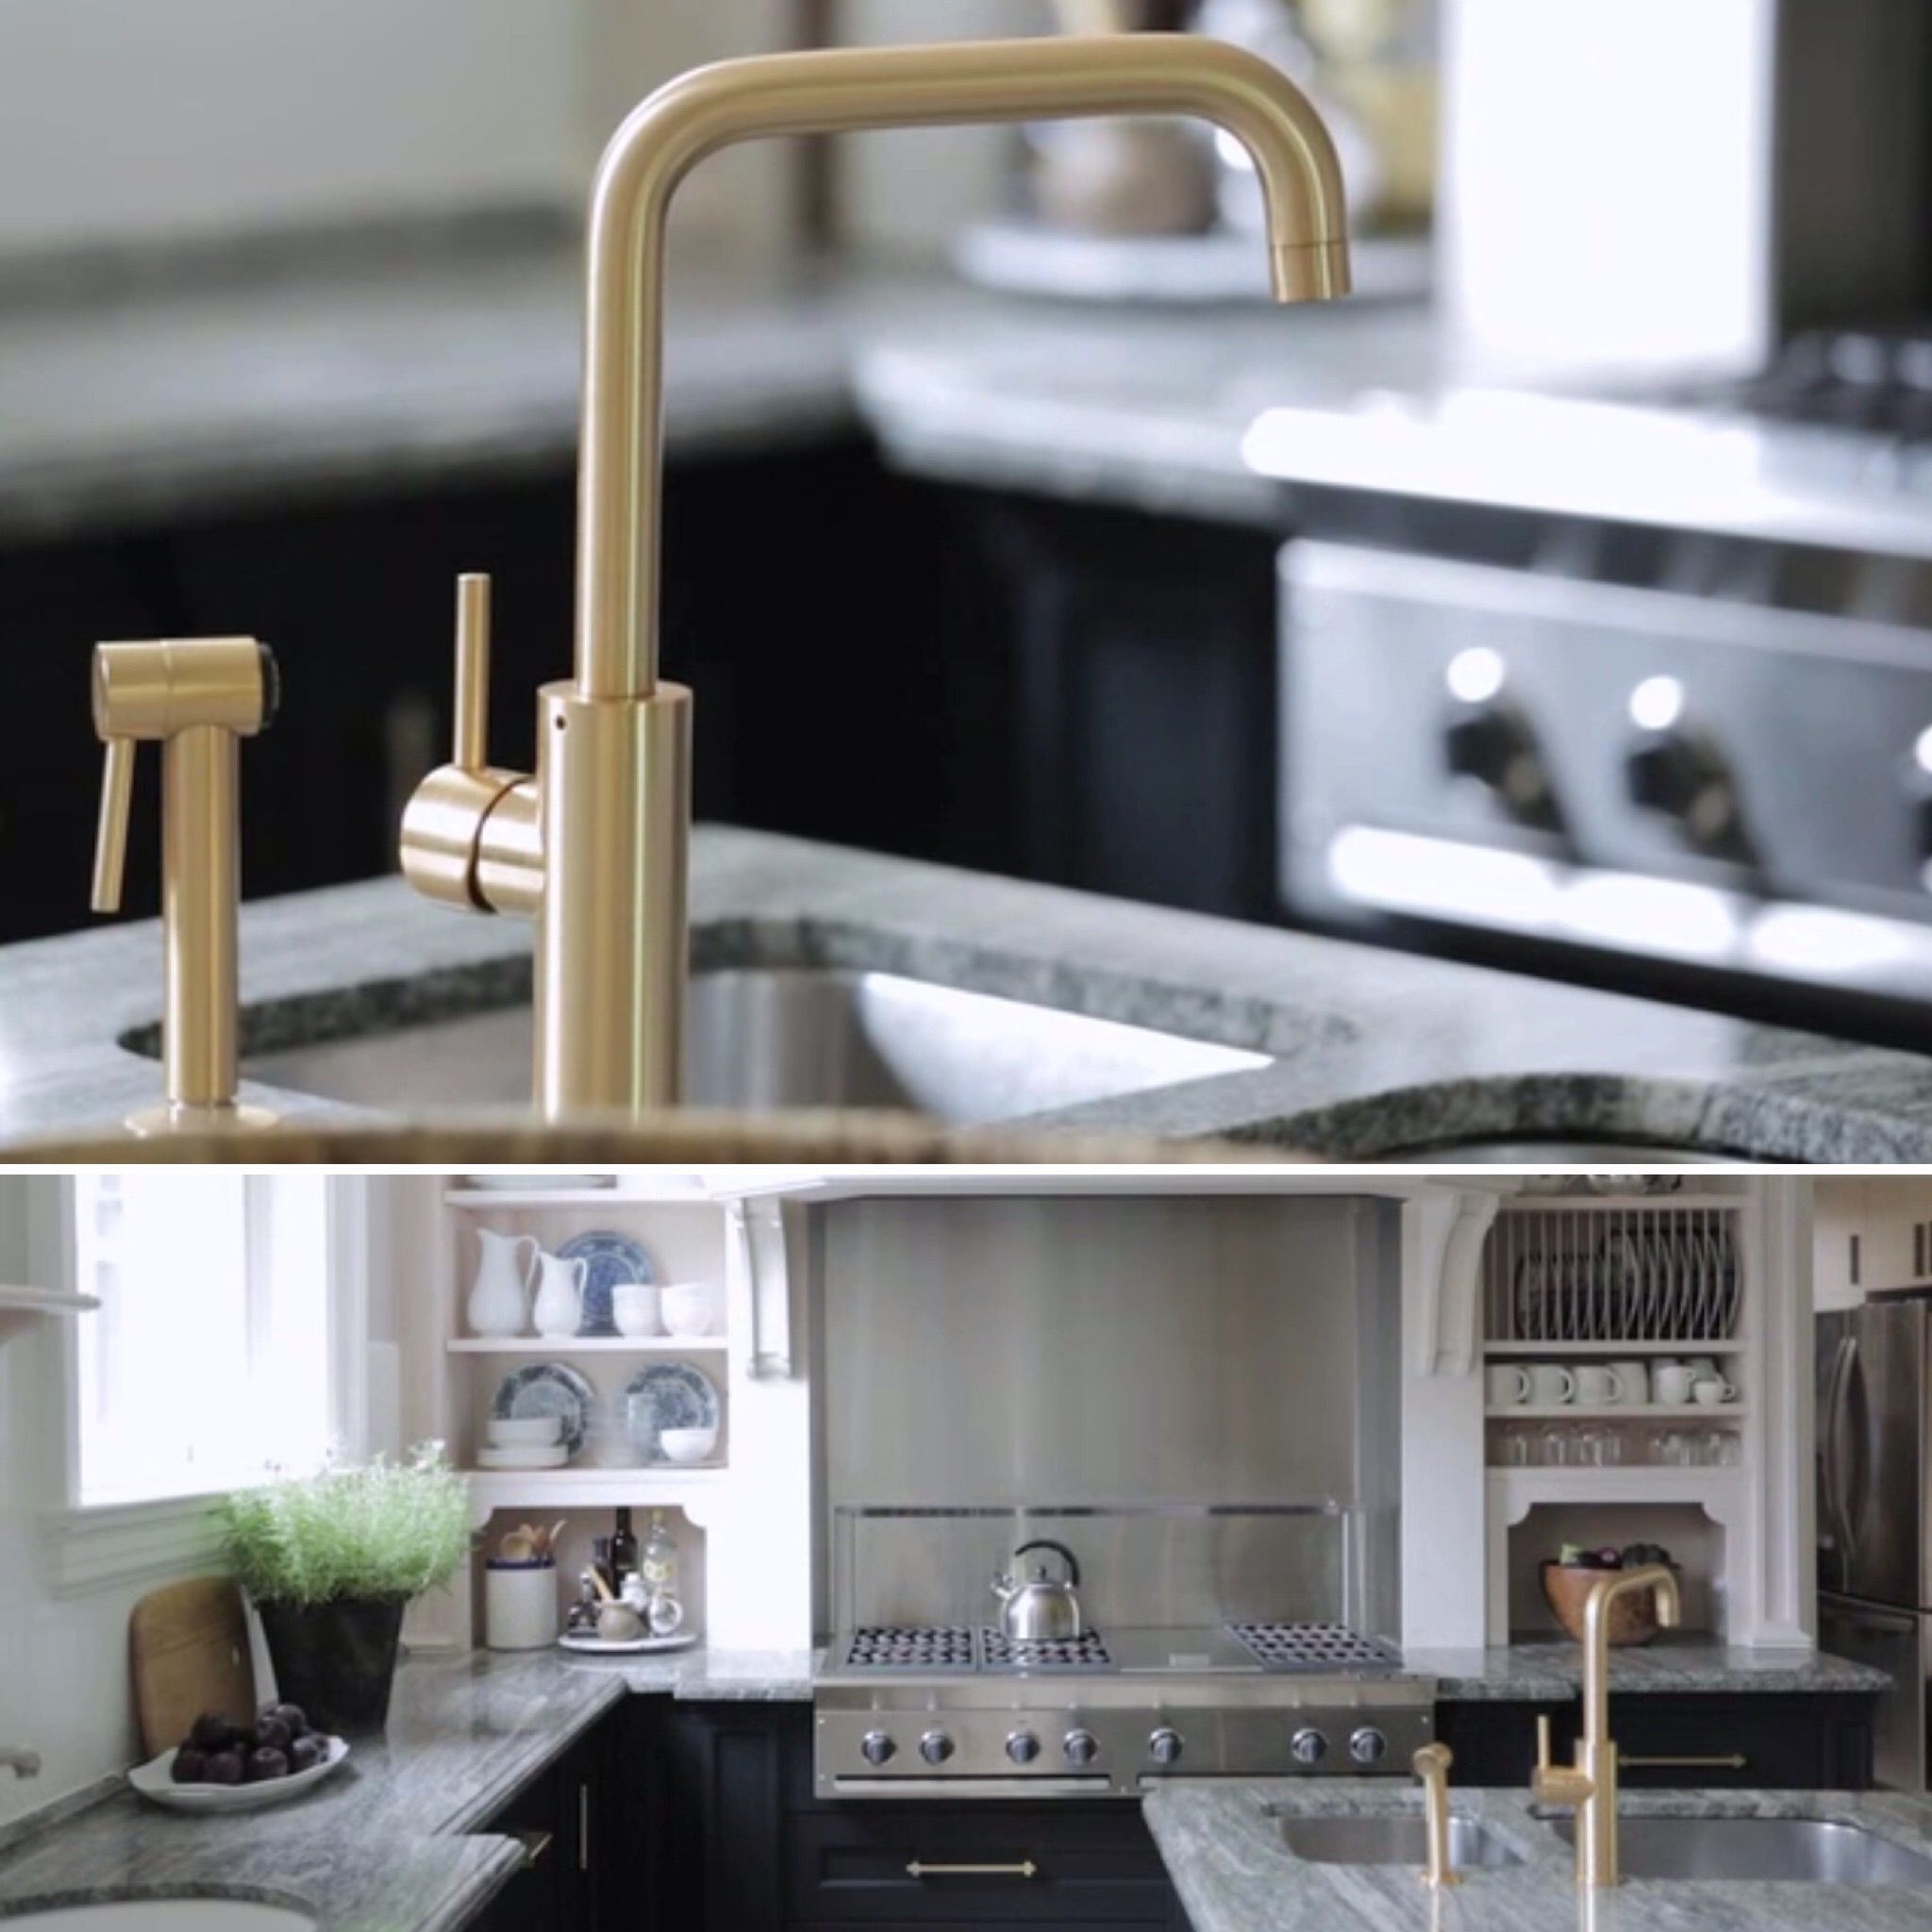 Multifunctional Live-In Kitchen | Kitchen faucets, Faucet and Kitchens